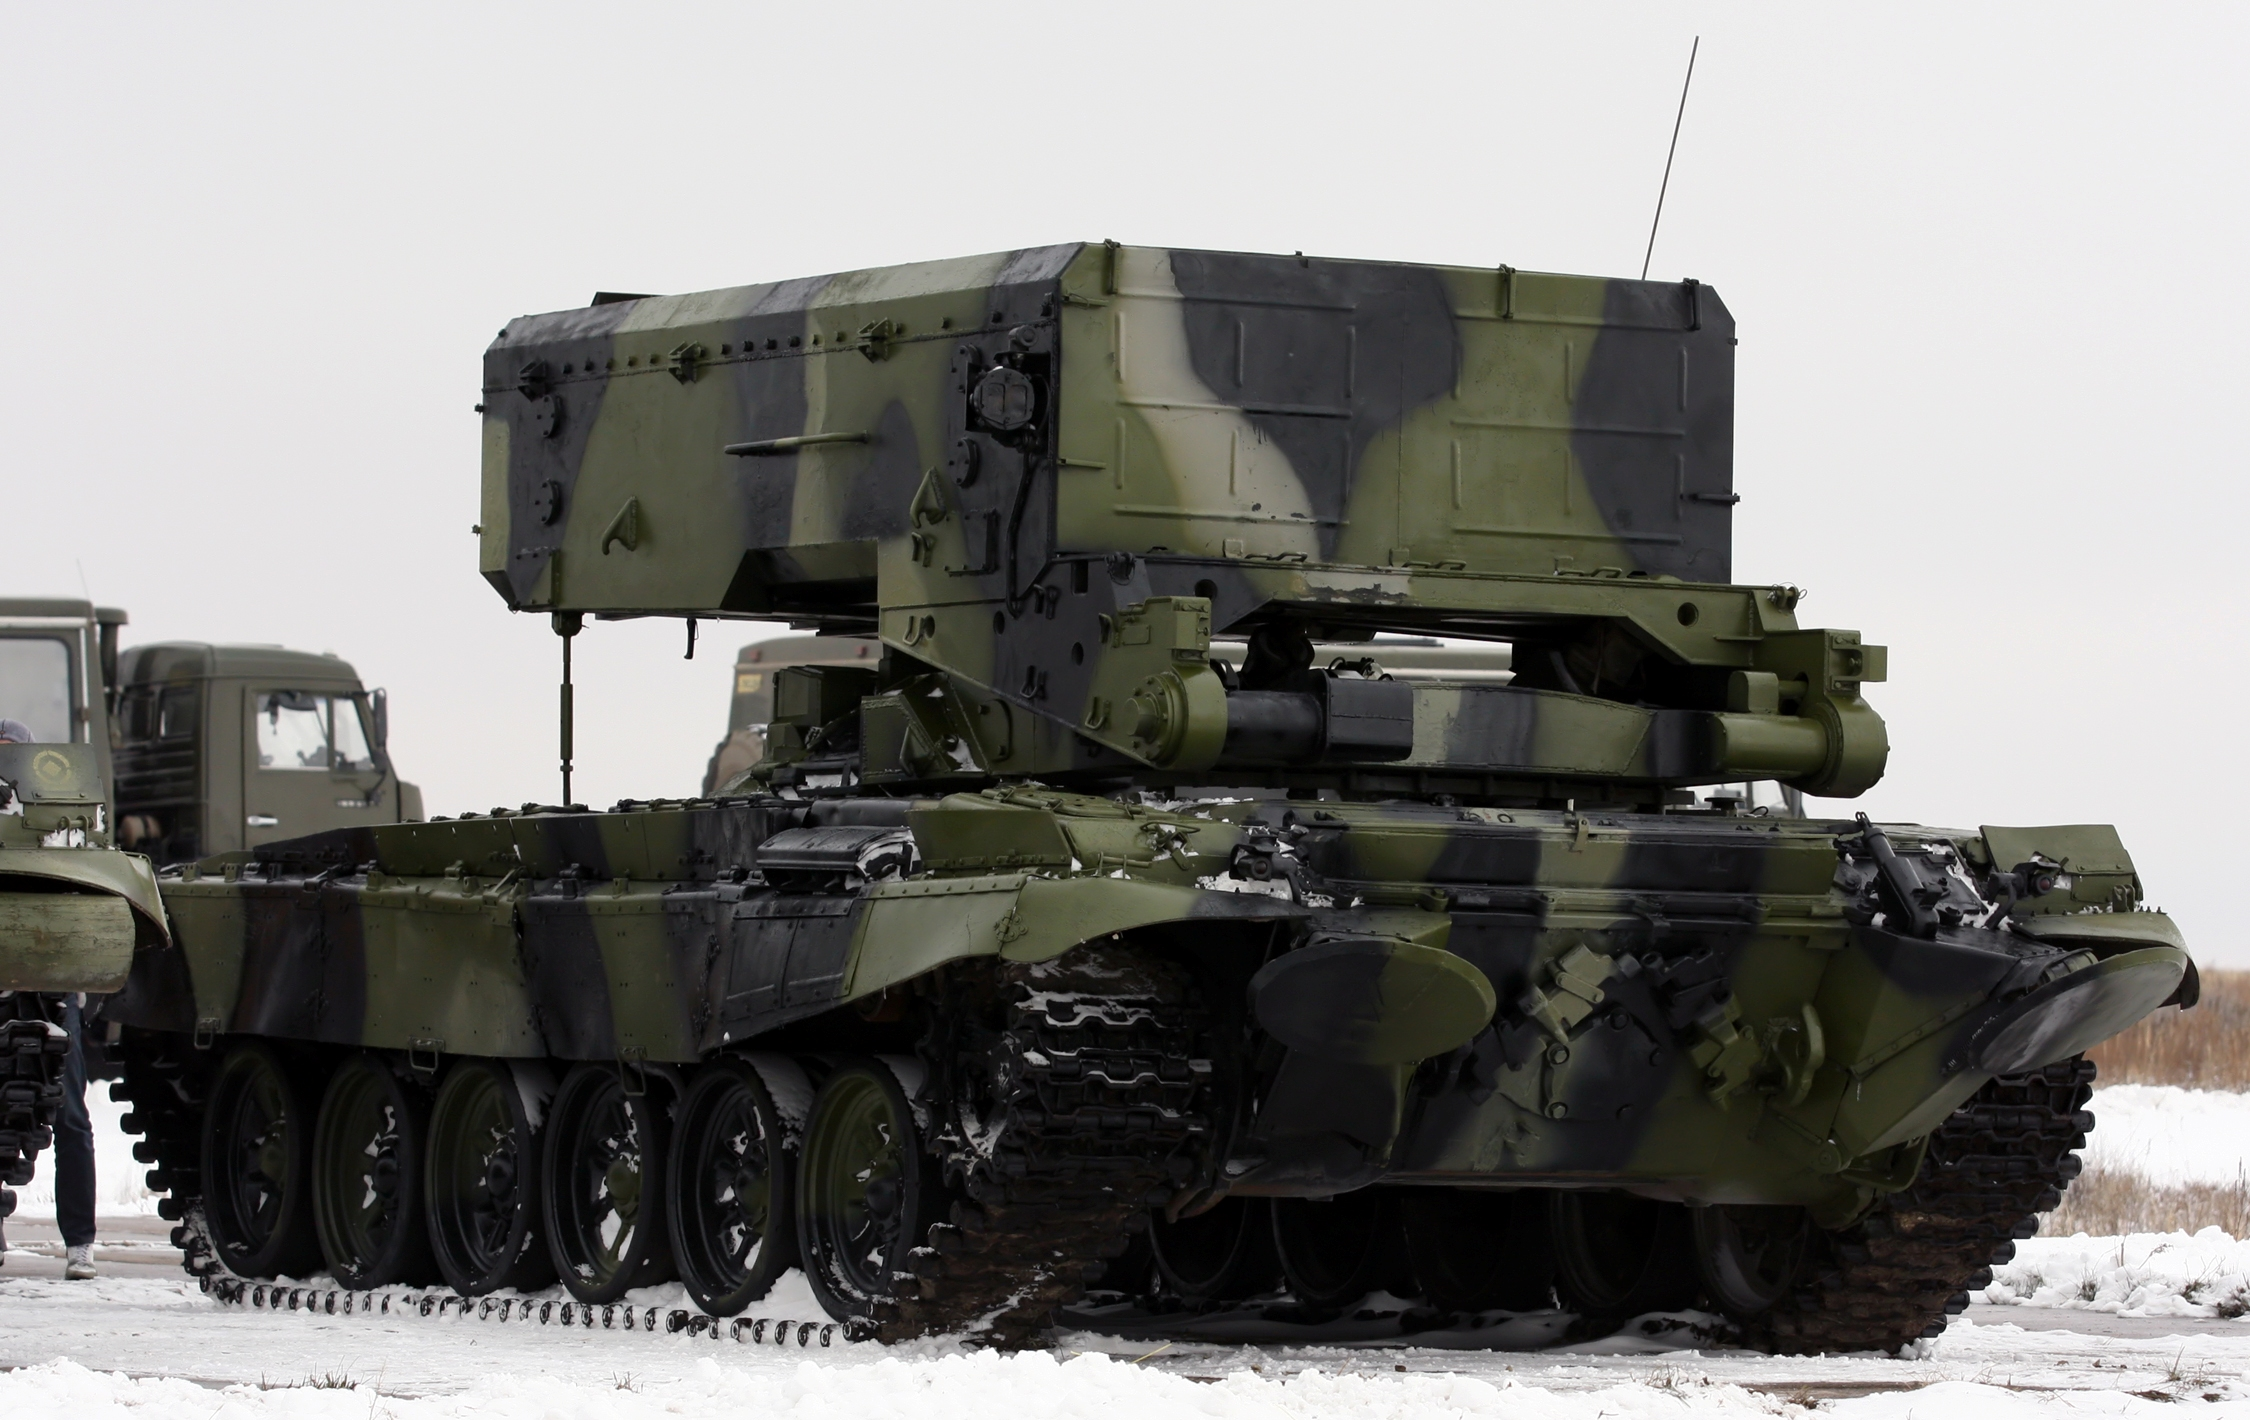 http://upload.wikimedia.org/wikipedia/commons/9/92/TZM-T_of_the_TOS-1A_system_(4).jpg